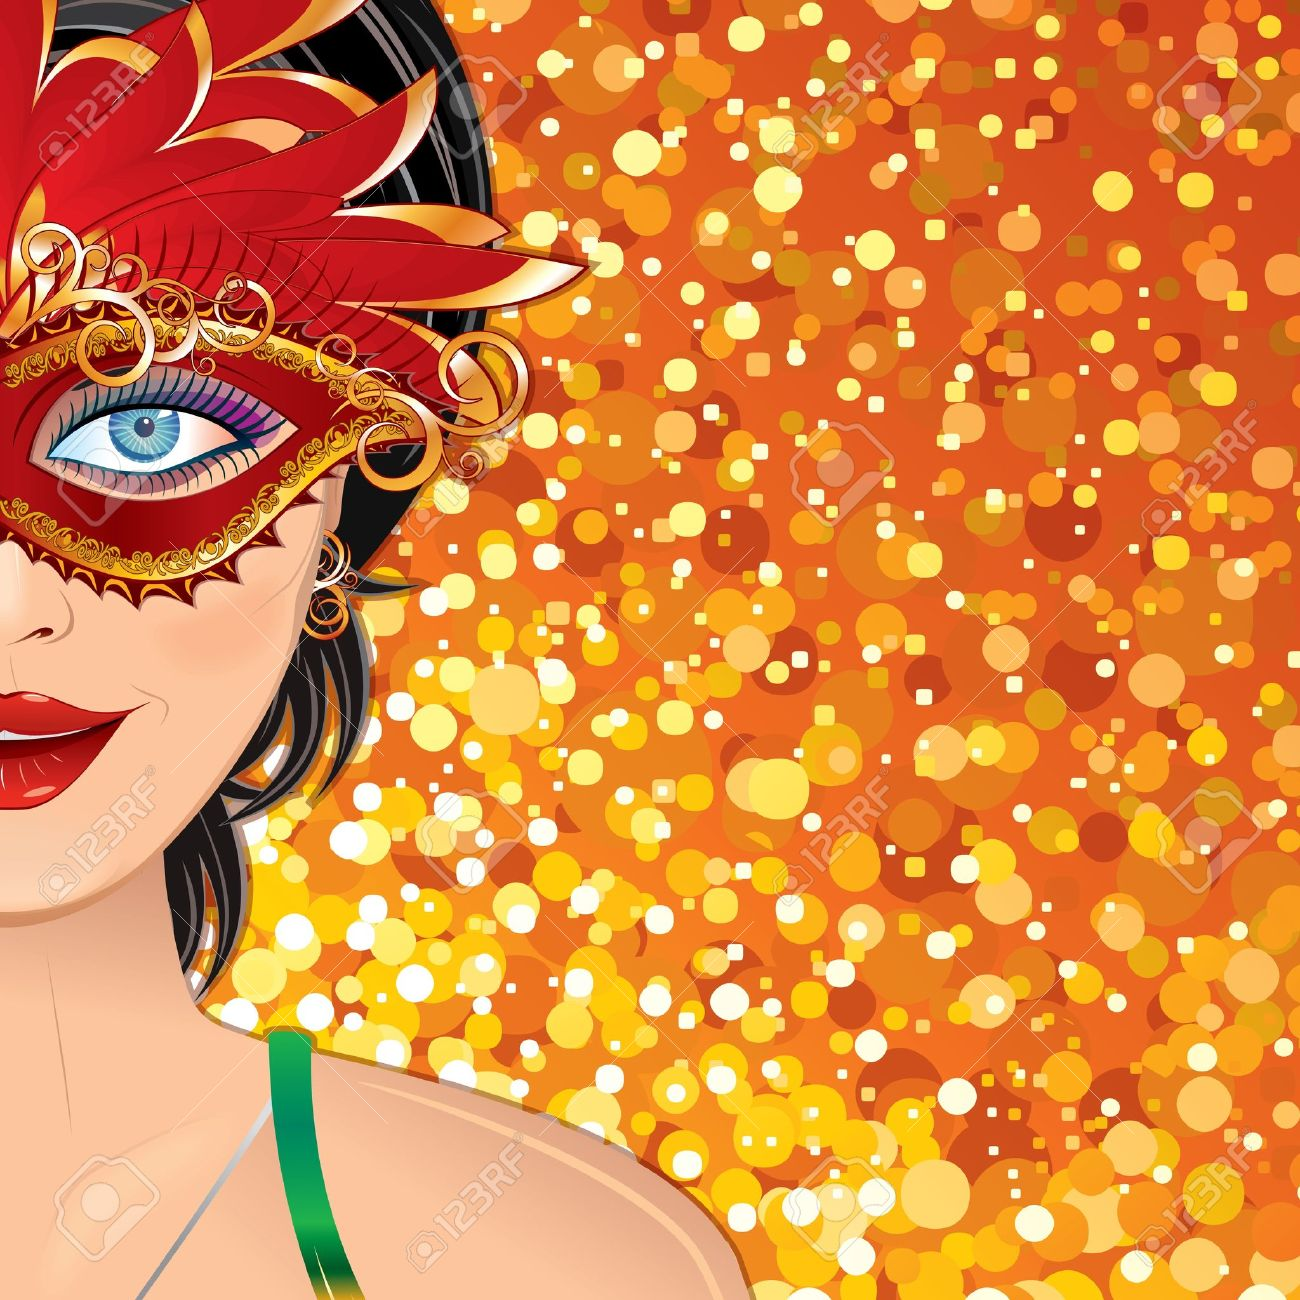 Festive Carnival Background with Beauty Girl with Mask. Colorful Vector Illustration with Copyspace Stock Vector - 12411499